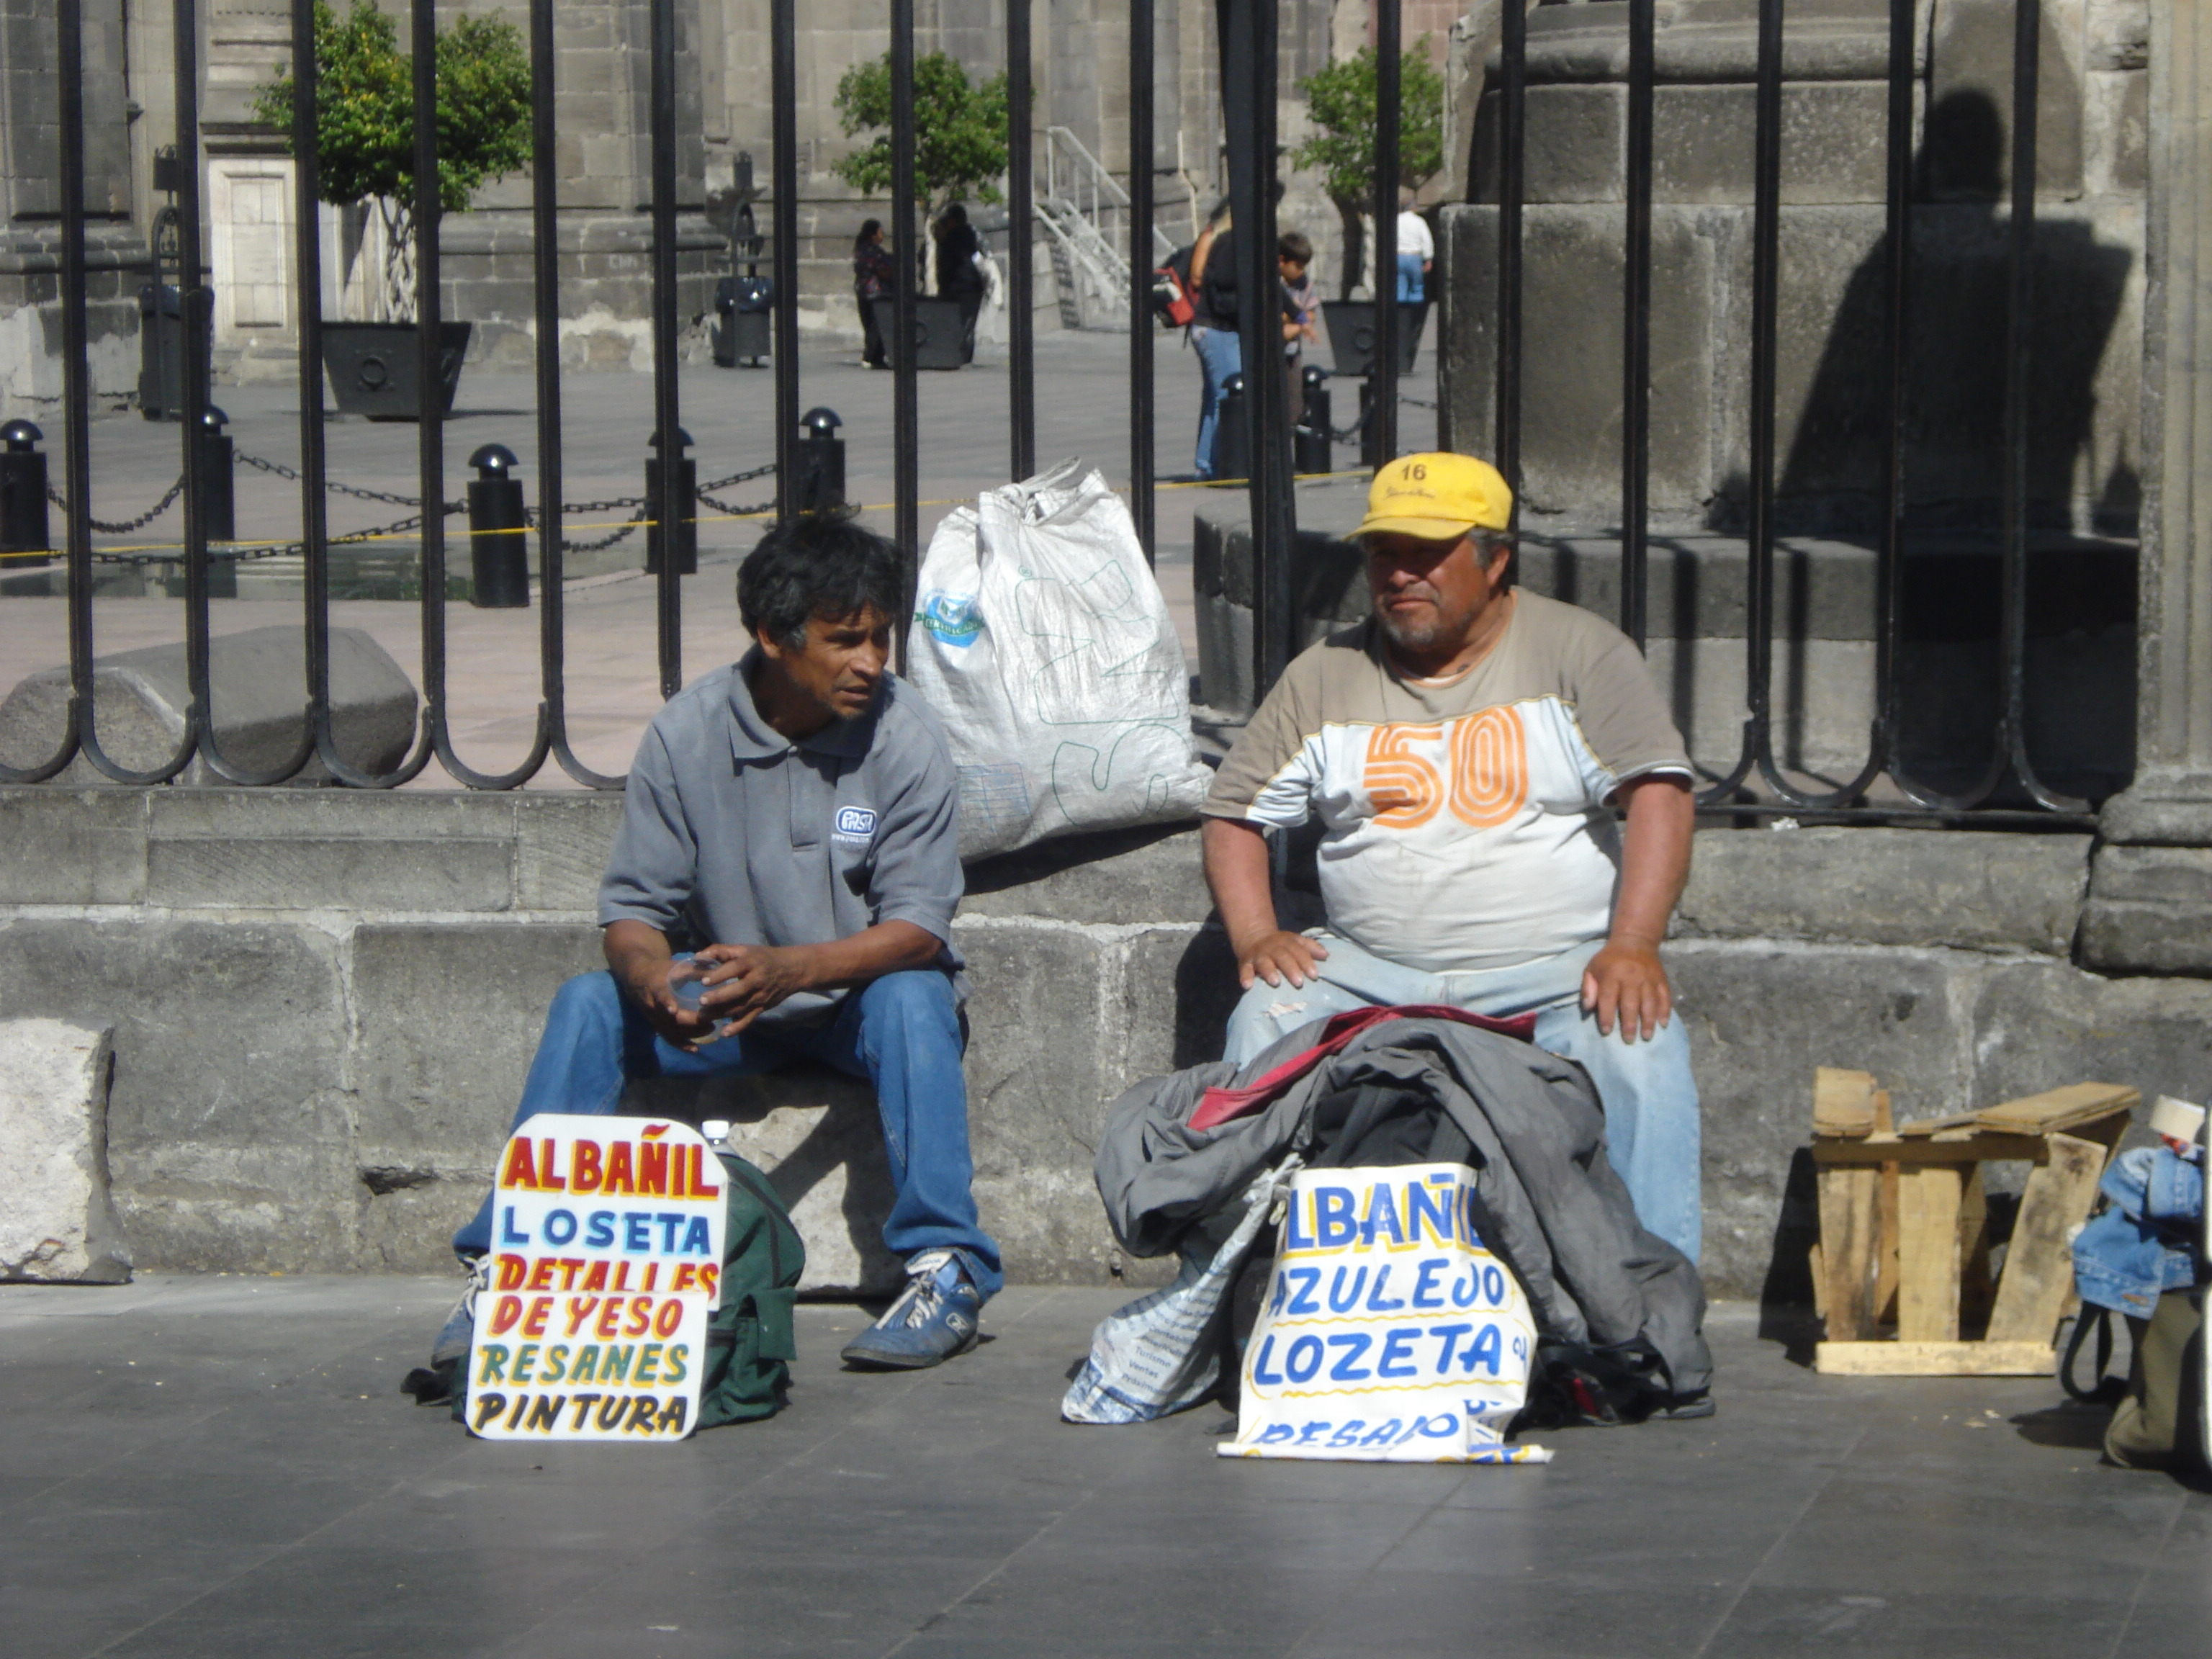 Archivo unemployment in mexico wikipedia la for Trabajo para pintores